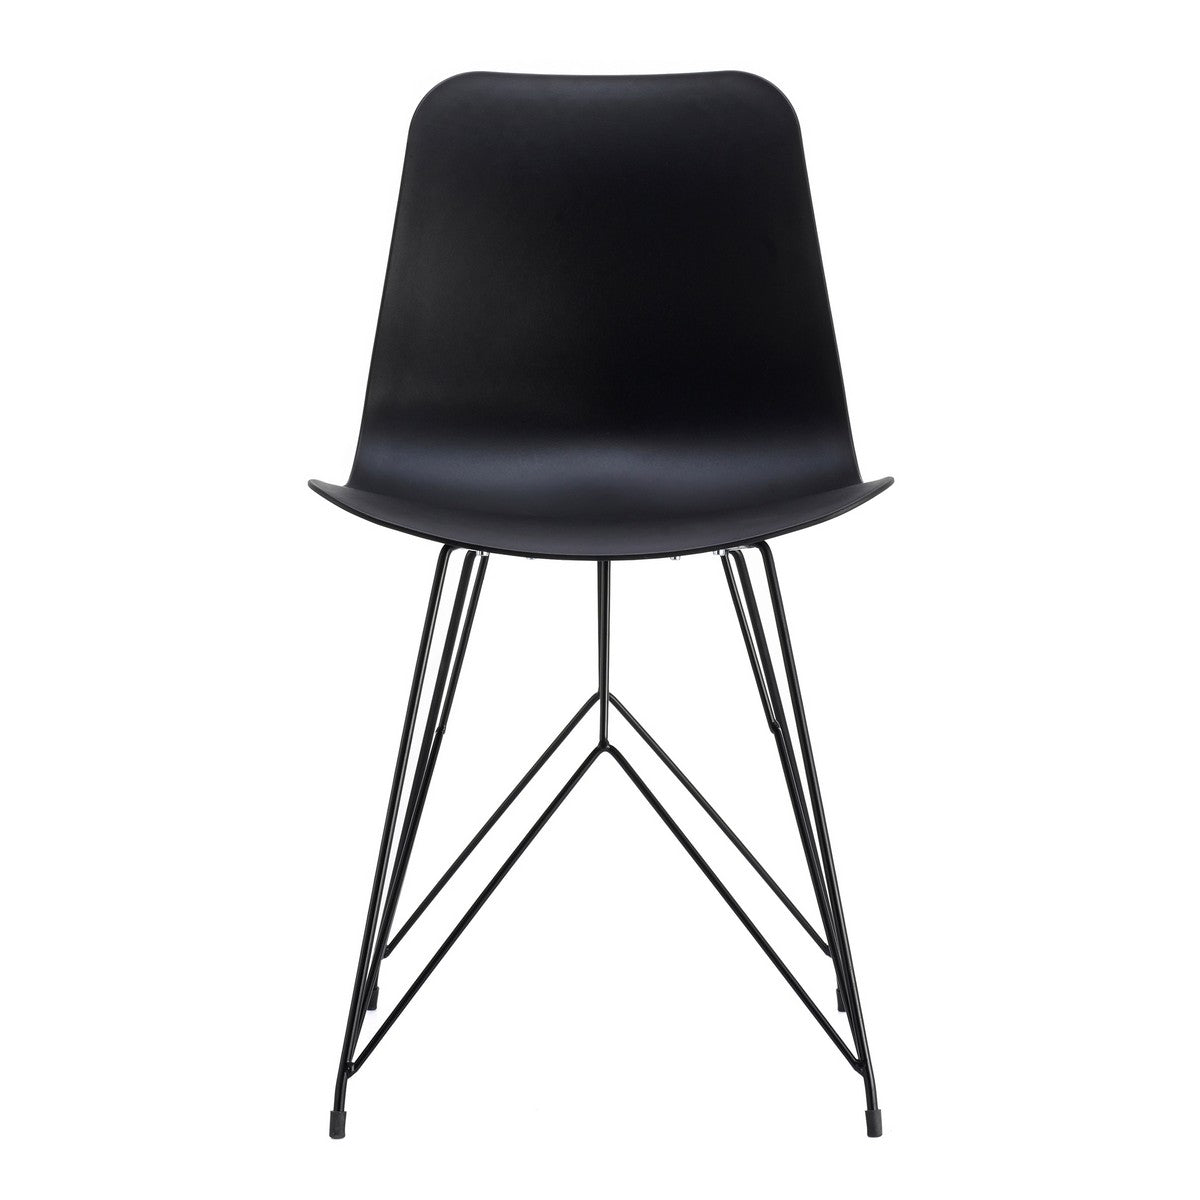 Moe's Home Collection Esterno Outdoor Chair Black-Set of Two - QX-1002-02 - Moe's Home Collection - Dining Chairs - Minimal And Modern - 1